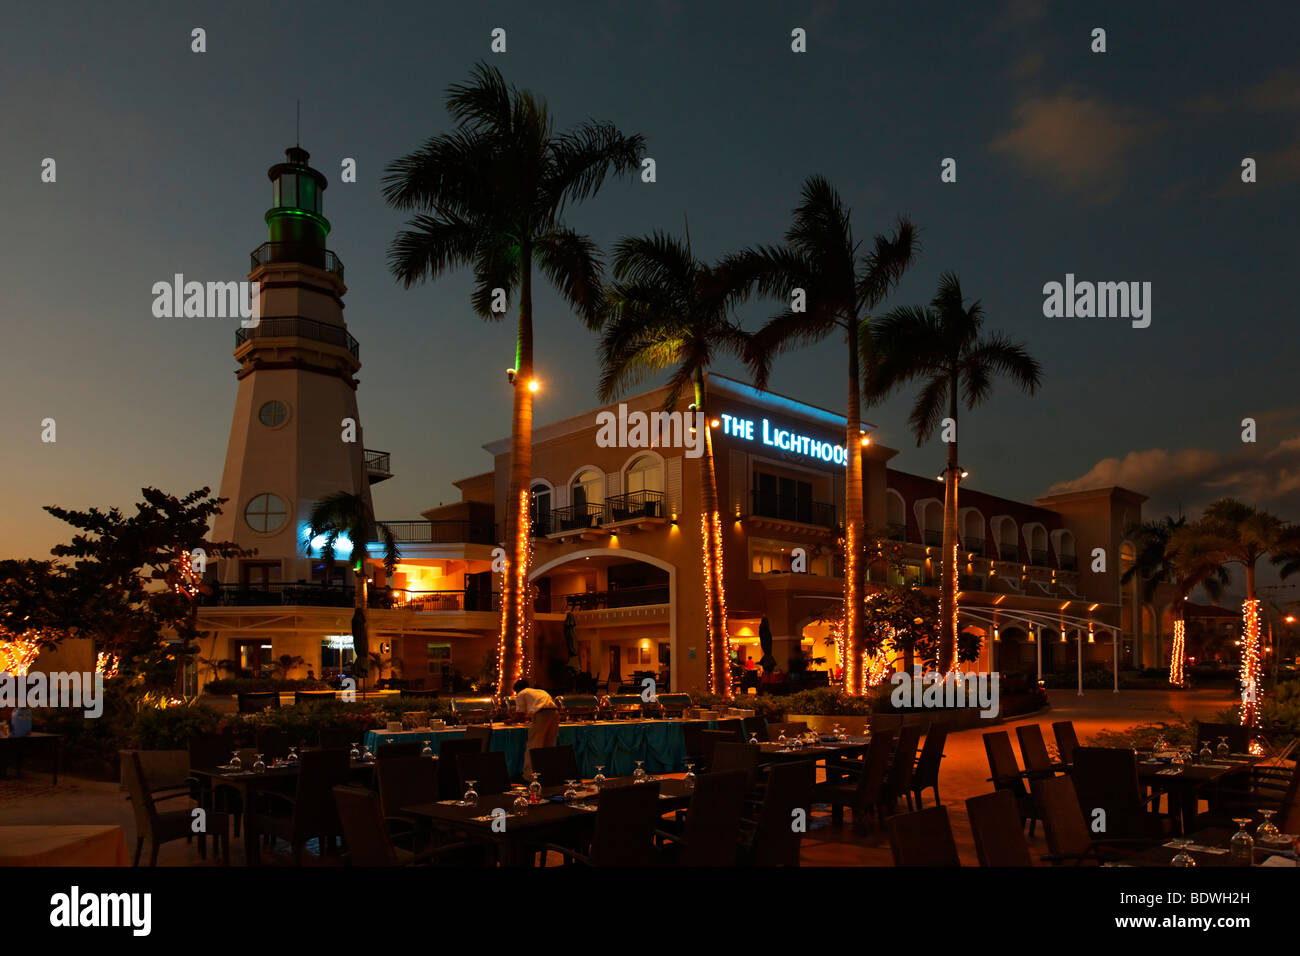 The Lighthouse Hotel, night, illuminated, fairy lights, restaurant, palm trees, romantic mood, Olongapo City, Subic - Stock Image